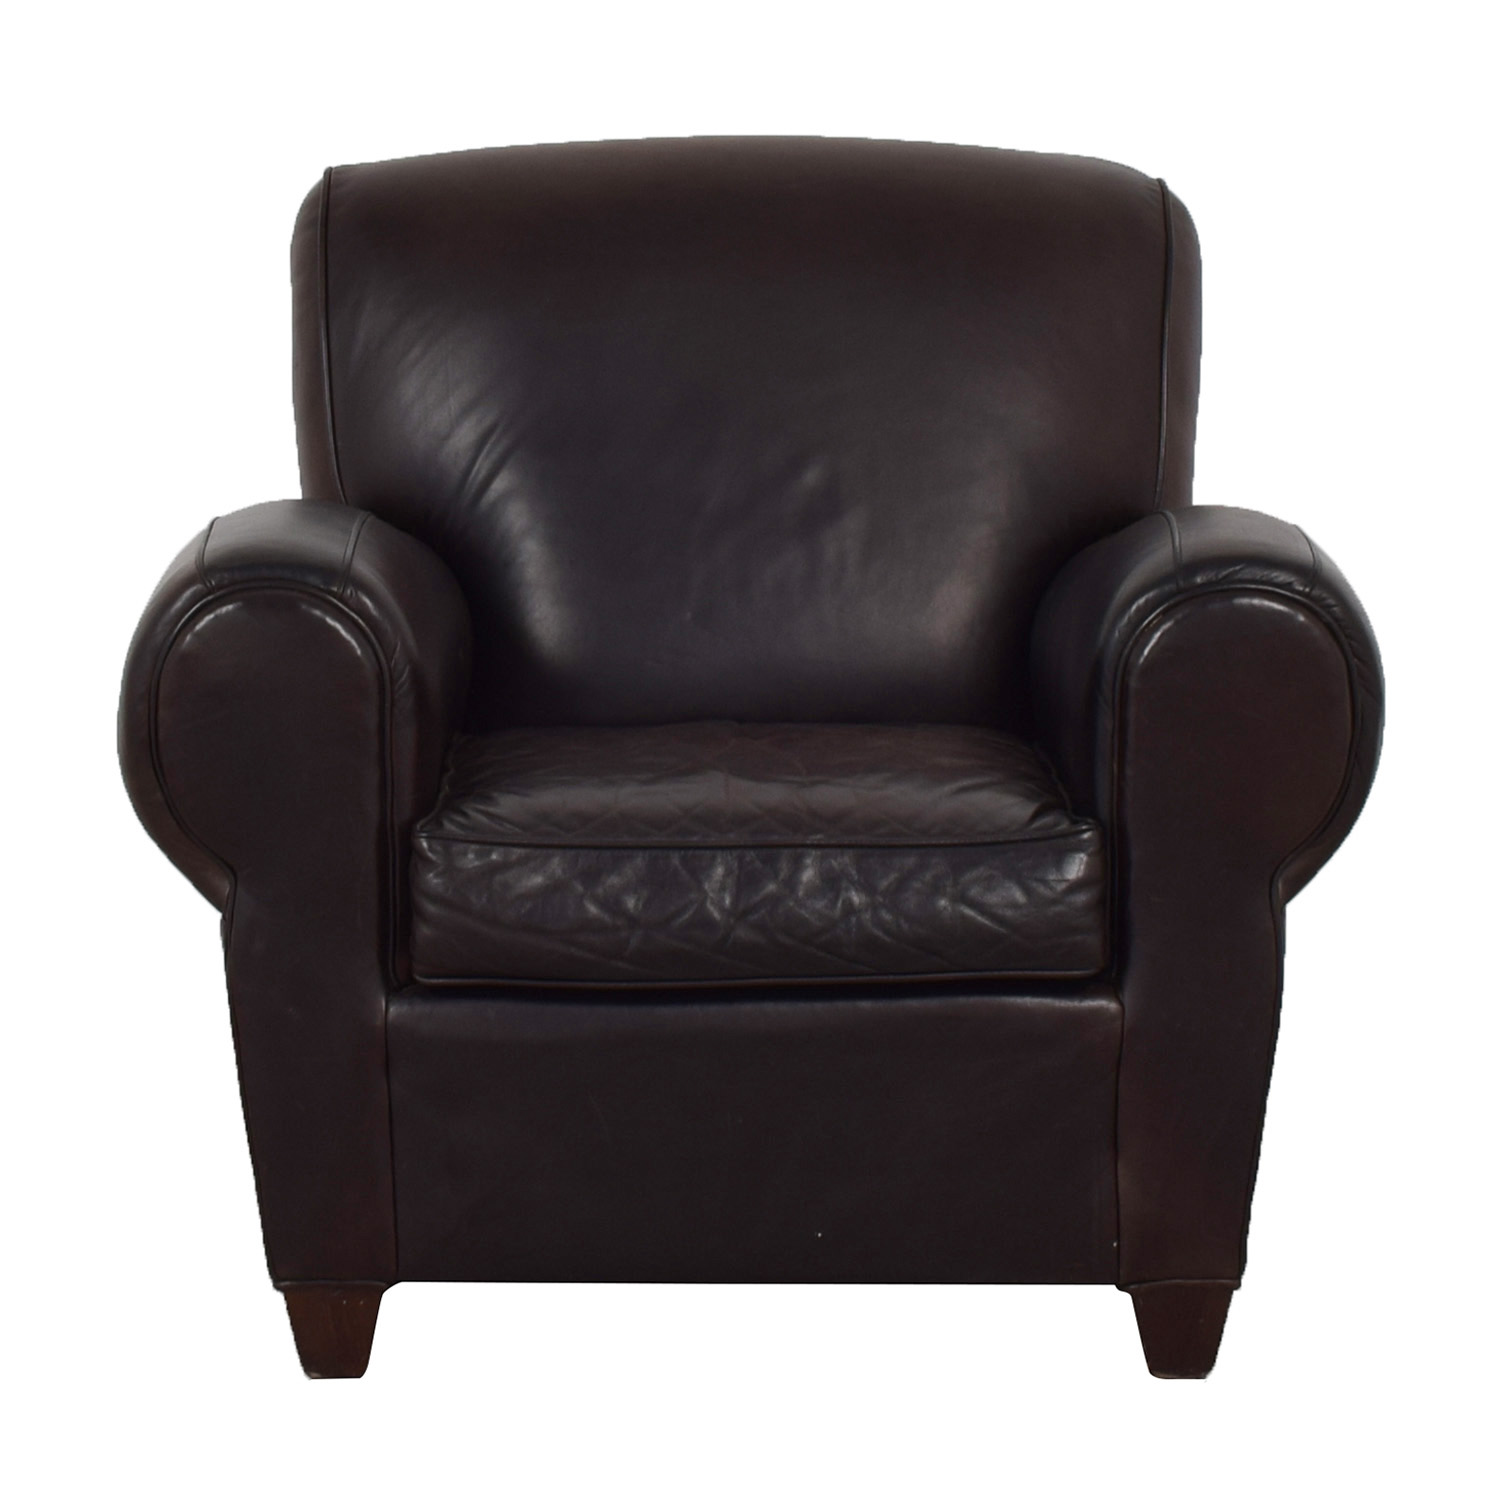 Mitchell Gold + Bob Williams Mitchell Gold + Bob Williams for Pottery Barn Brown Leather Chair for sale